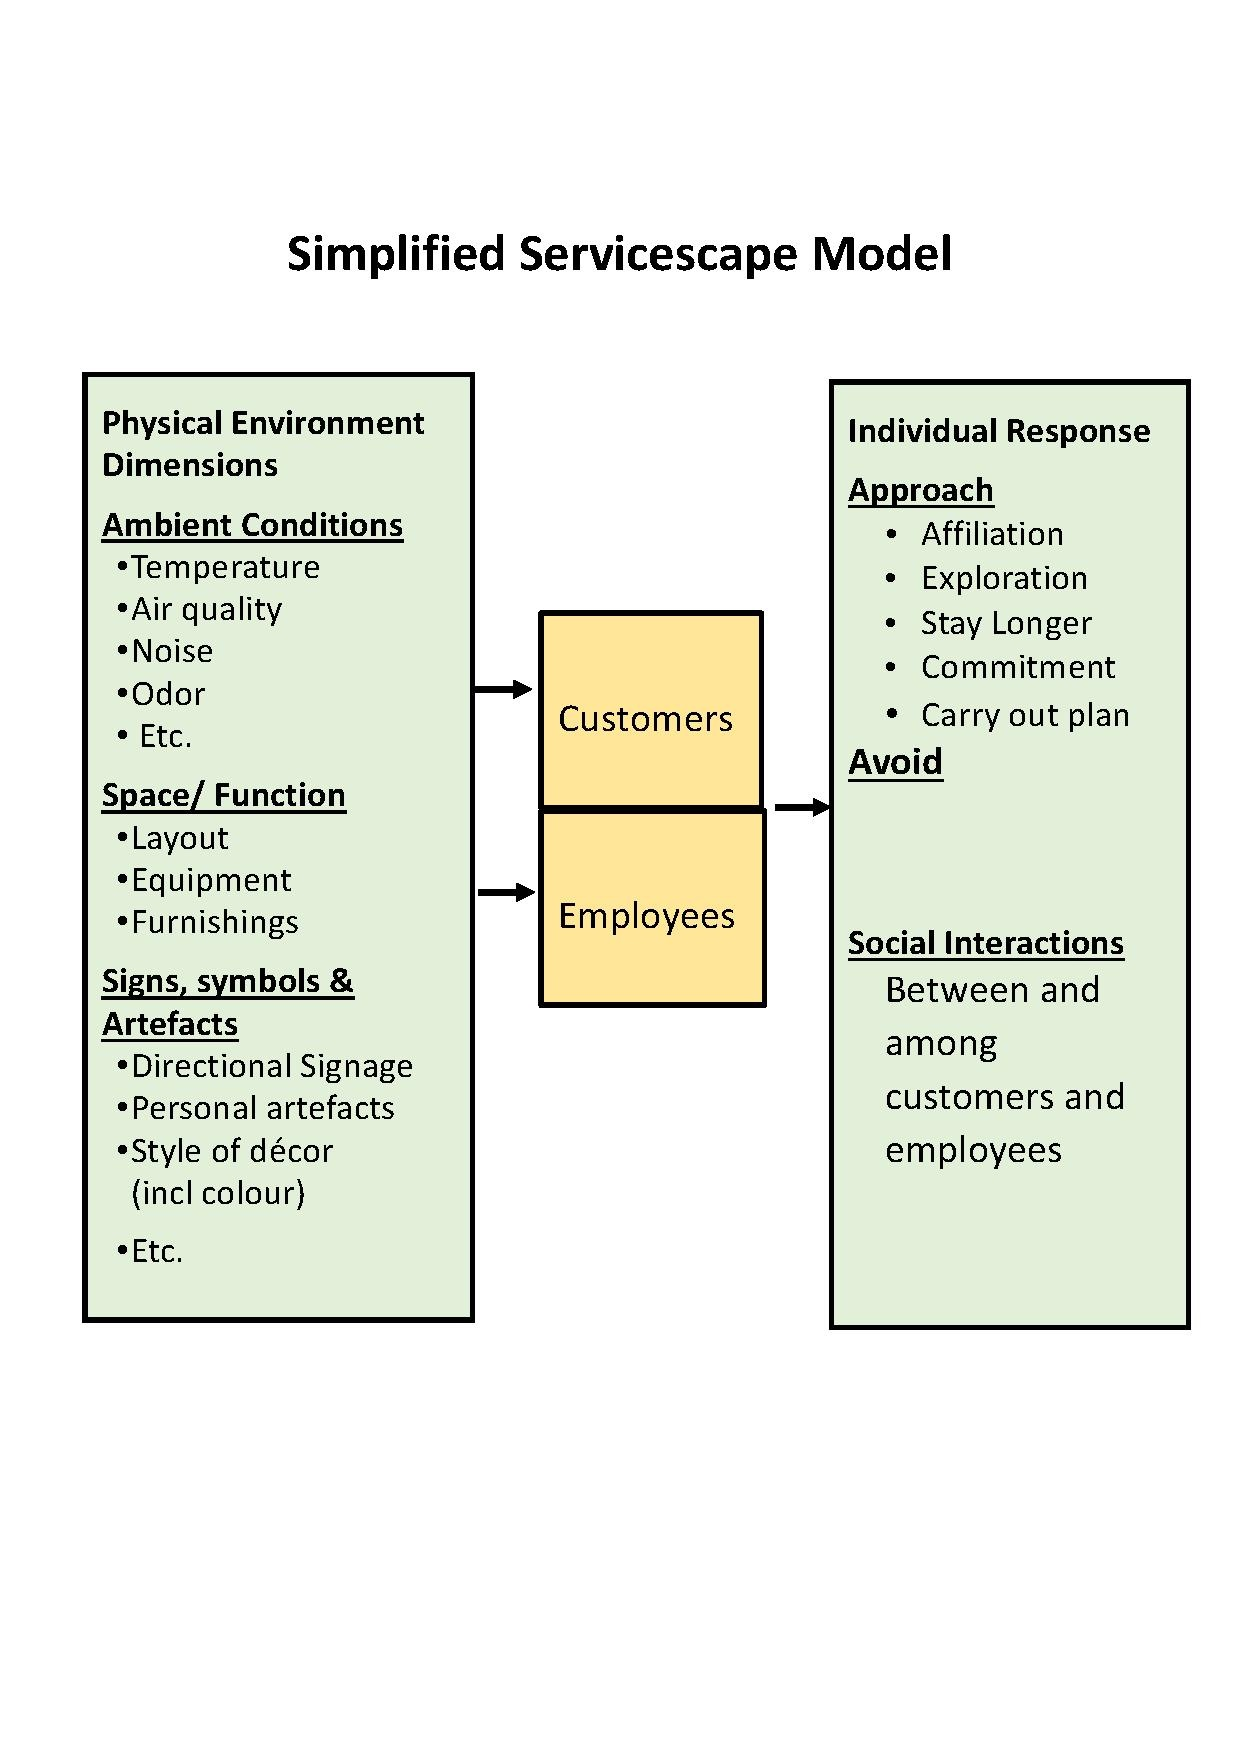 Credit One Application >> File:Simplified Servicescape Model.pdf - Wikimedia Commons